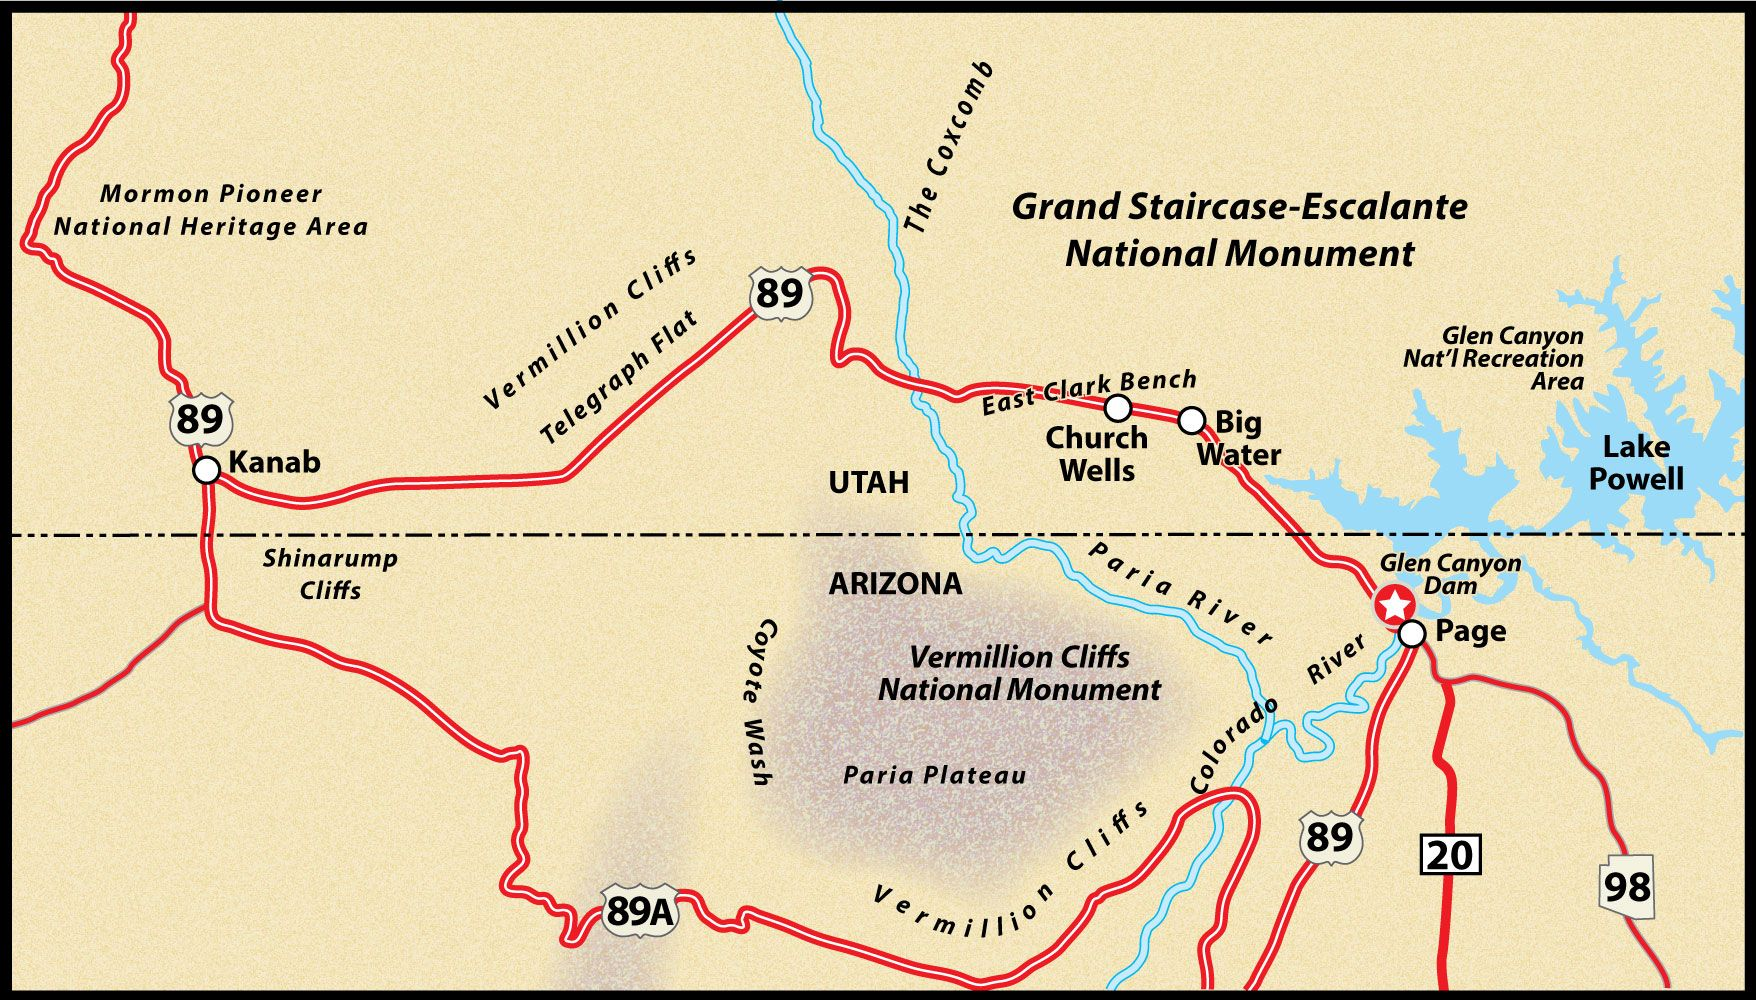 Map Of Highway 89 In Arizona.Us Route 89 Page To Kanab Road Trip Guide Map Route 89 Kanab